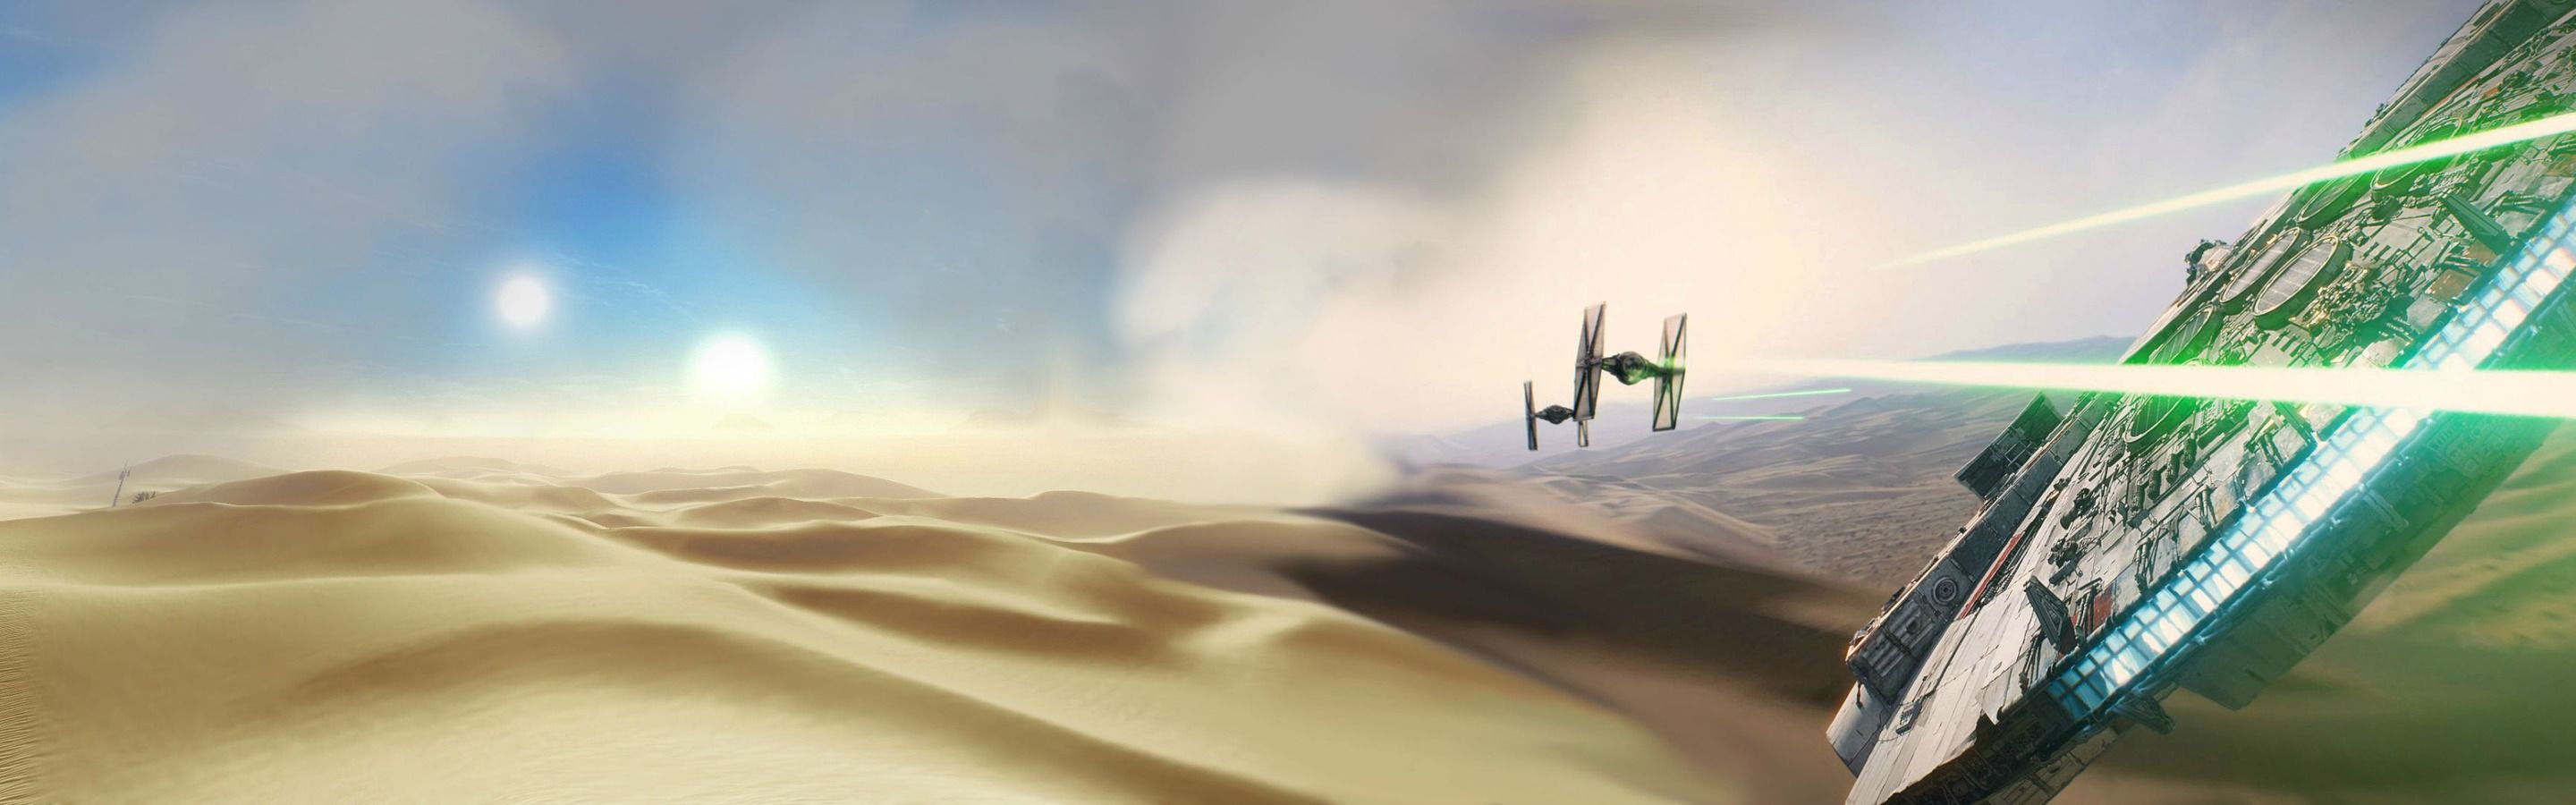 Star Wars Dual Screen Wallpapers Top Free Star Wars Dual Screen